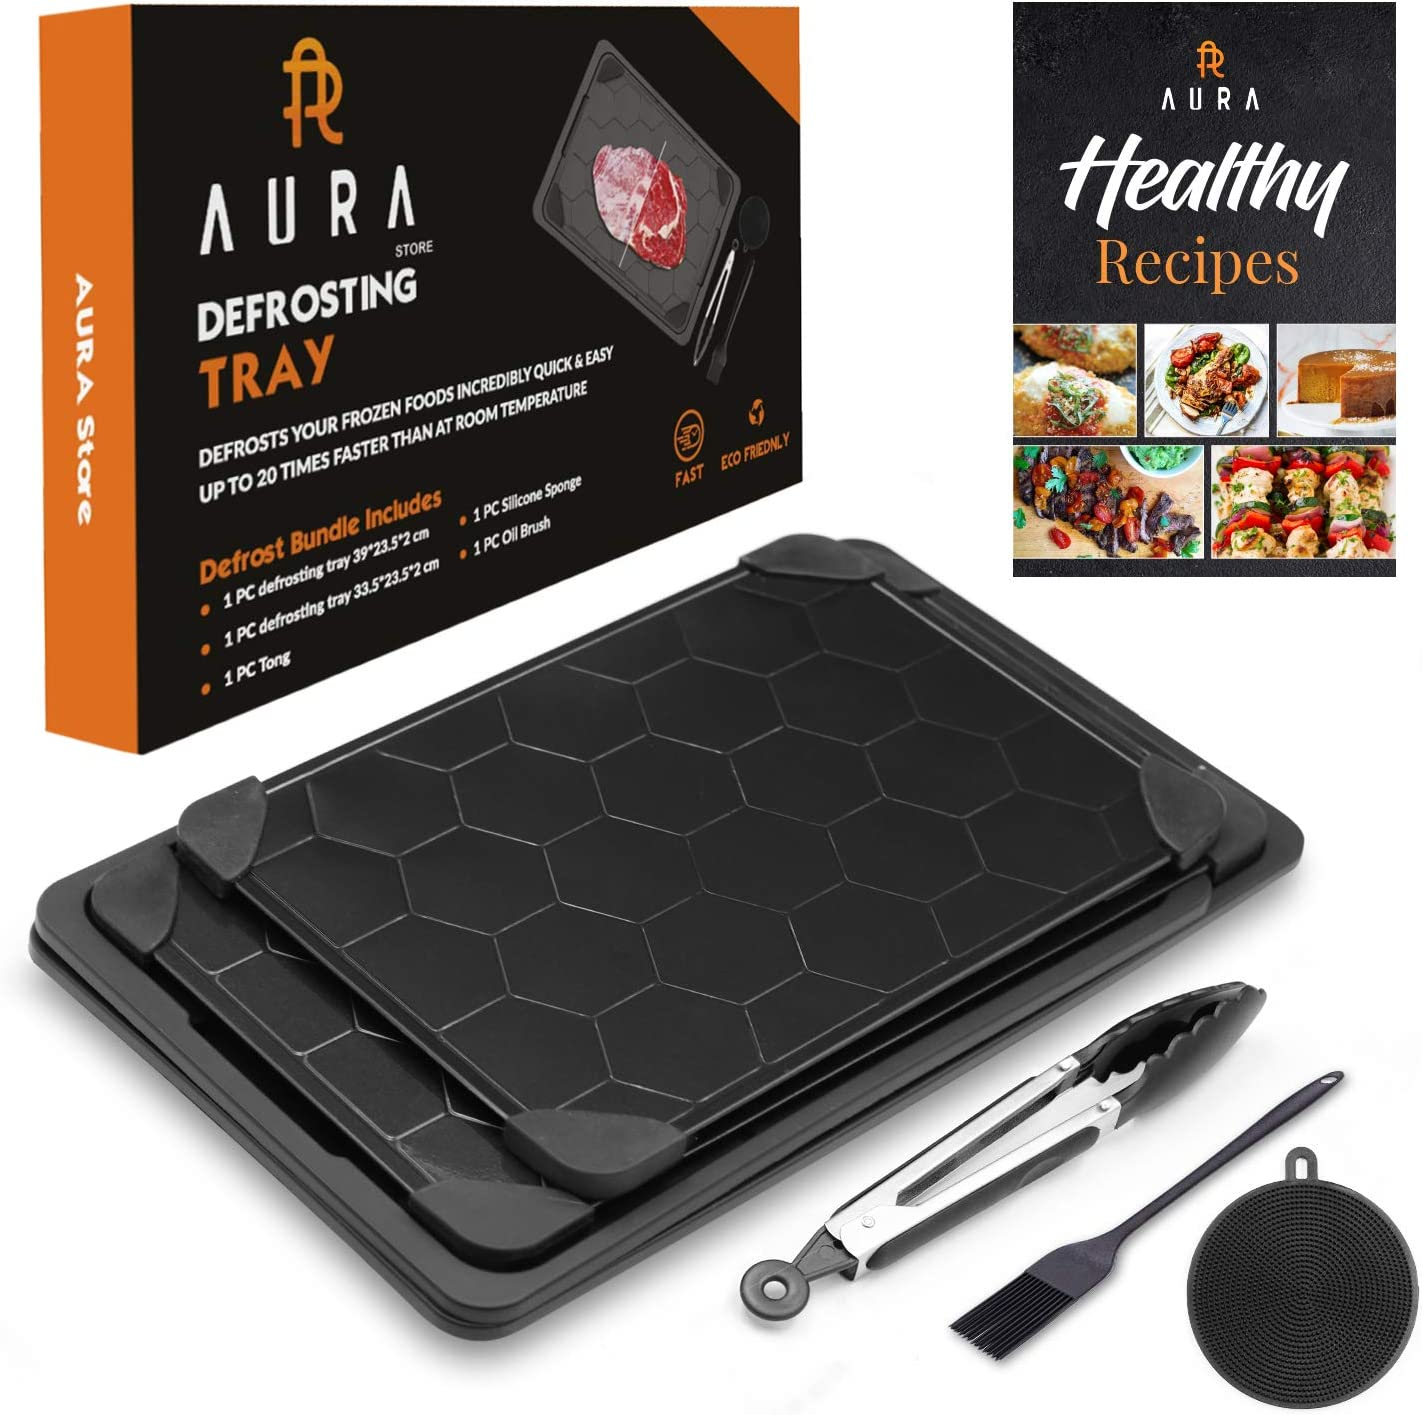 Defrosting Tray Set 7 Piece, Fast Thawing Plate Board with Drip Tray, Defrosting Boards, Silicone Sponge, Cleaning Brush and Tongs, Rapid Thaw Frozen Foods, Meats, Vegetables